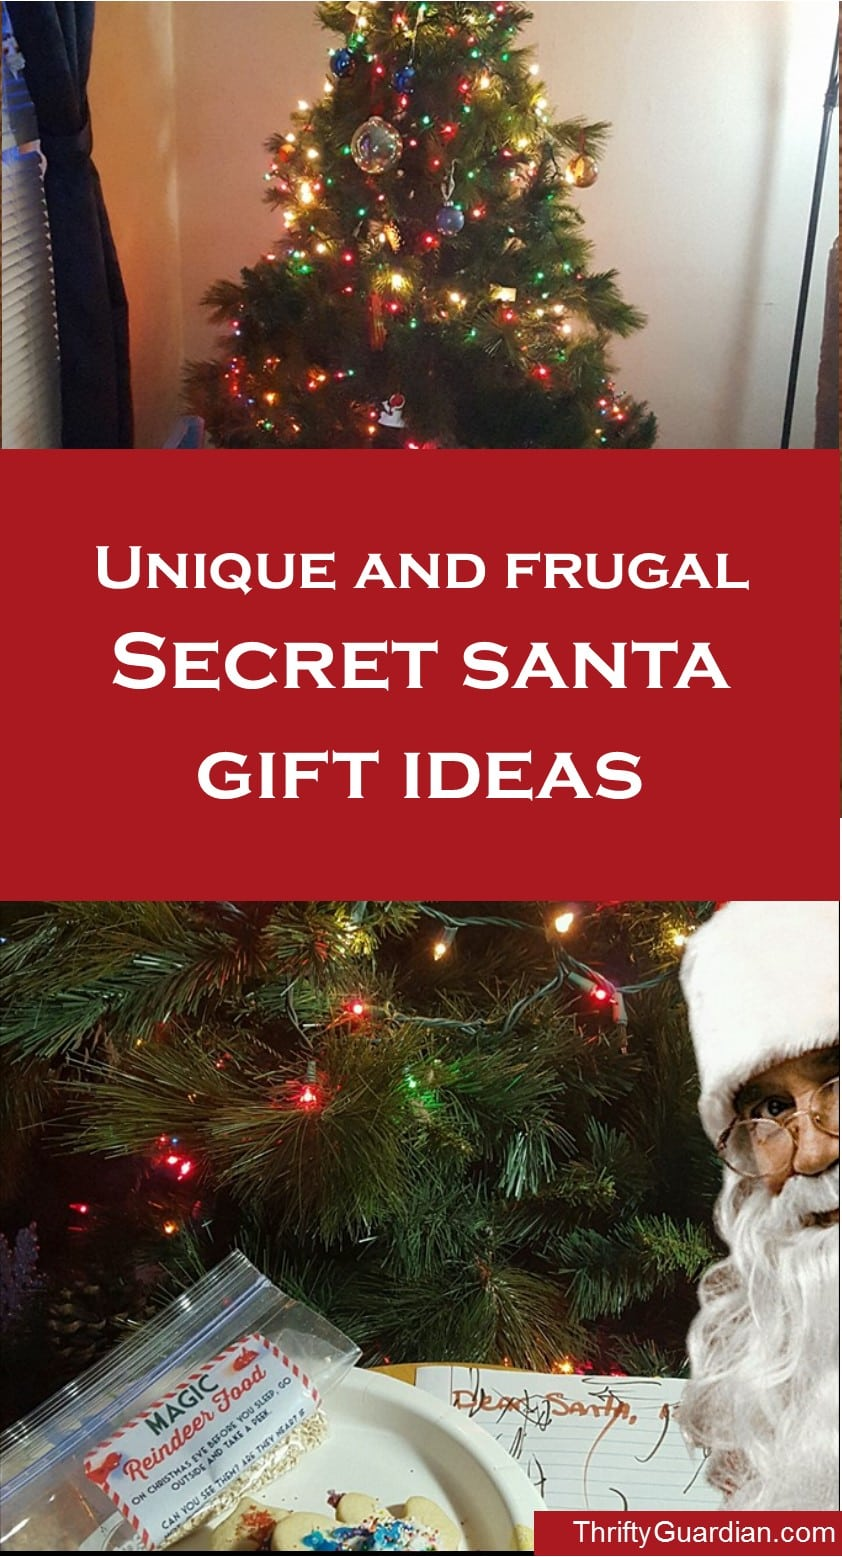 Secret Santa gift ideas, cheap secret santa gift ideas, inexpensive secret santa gift ideas, unique secret santa